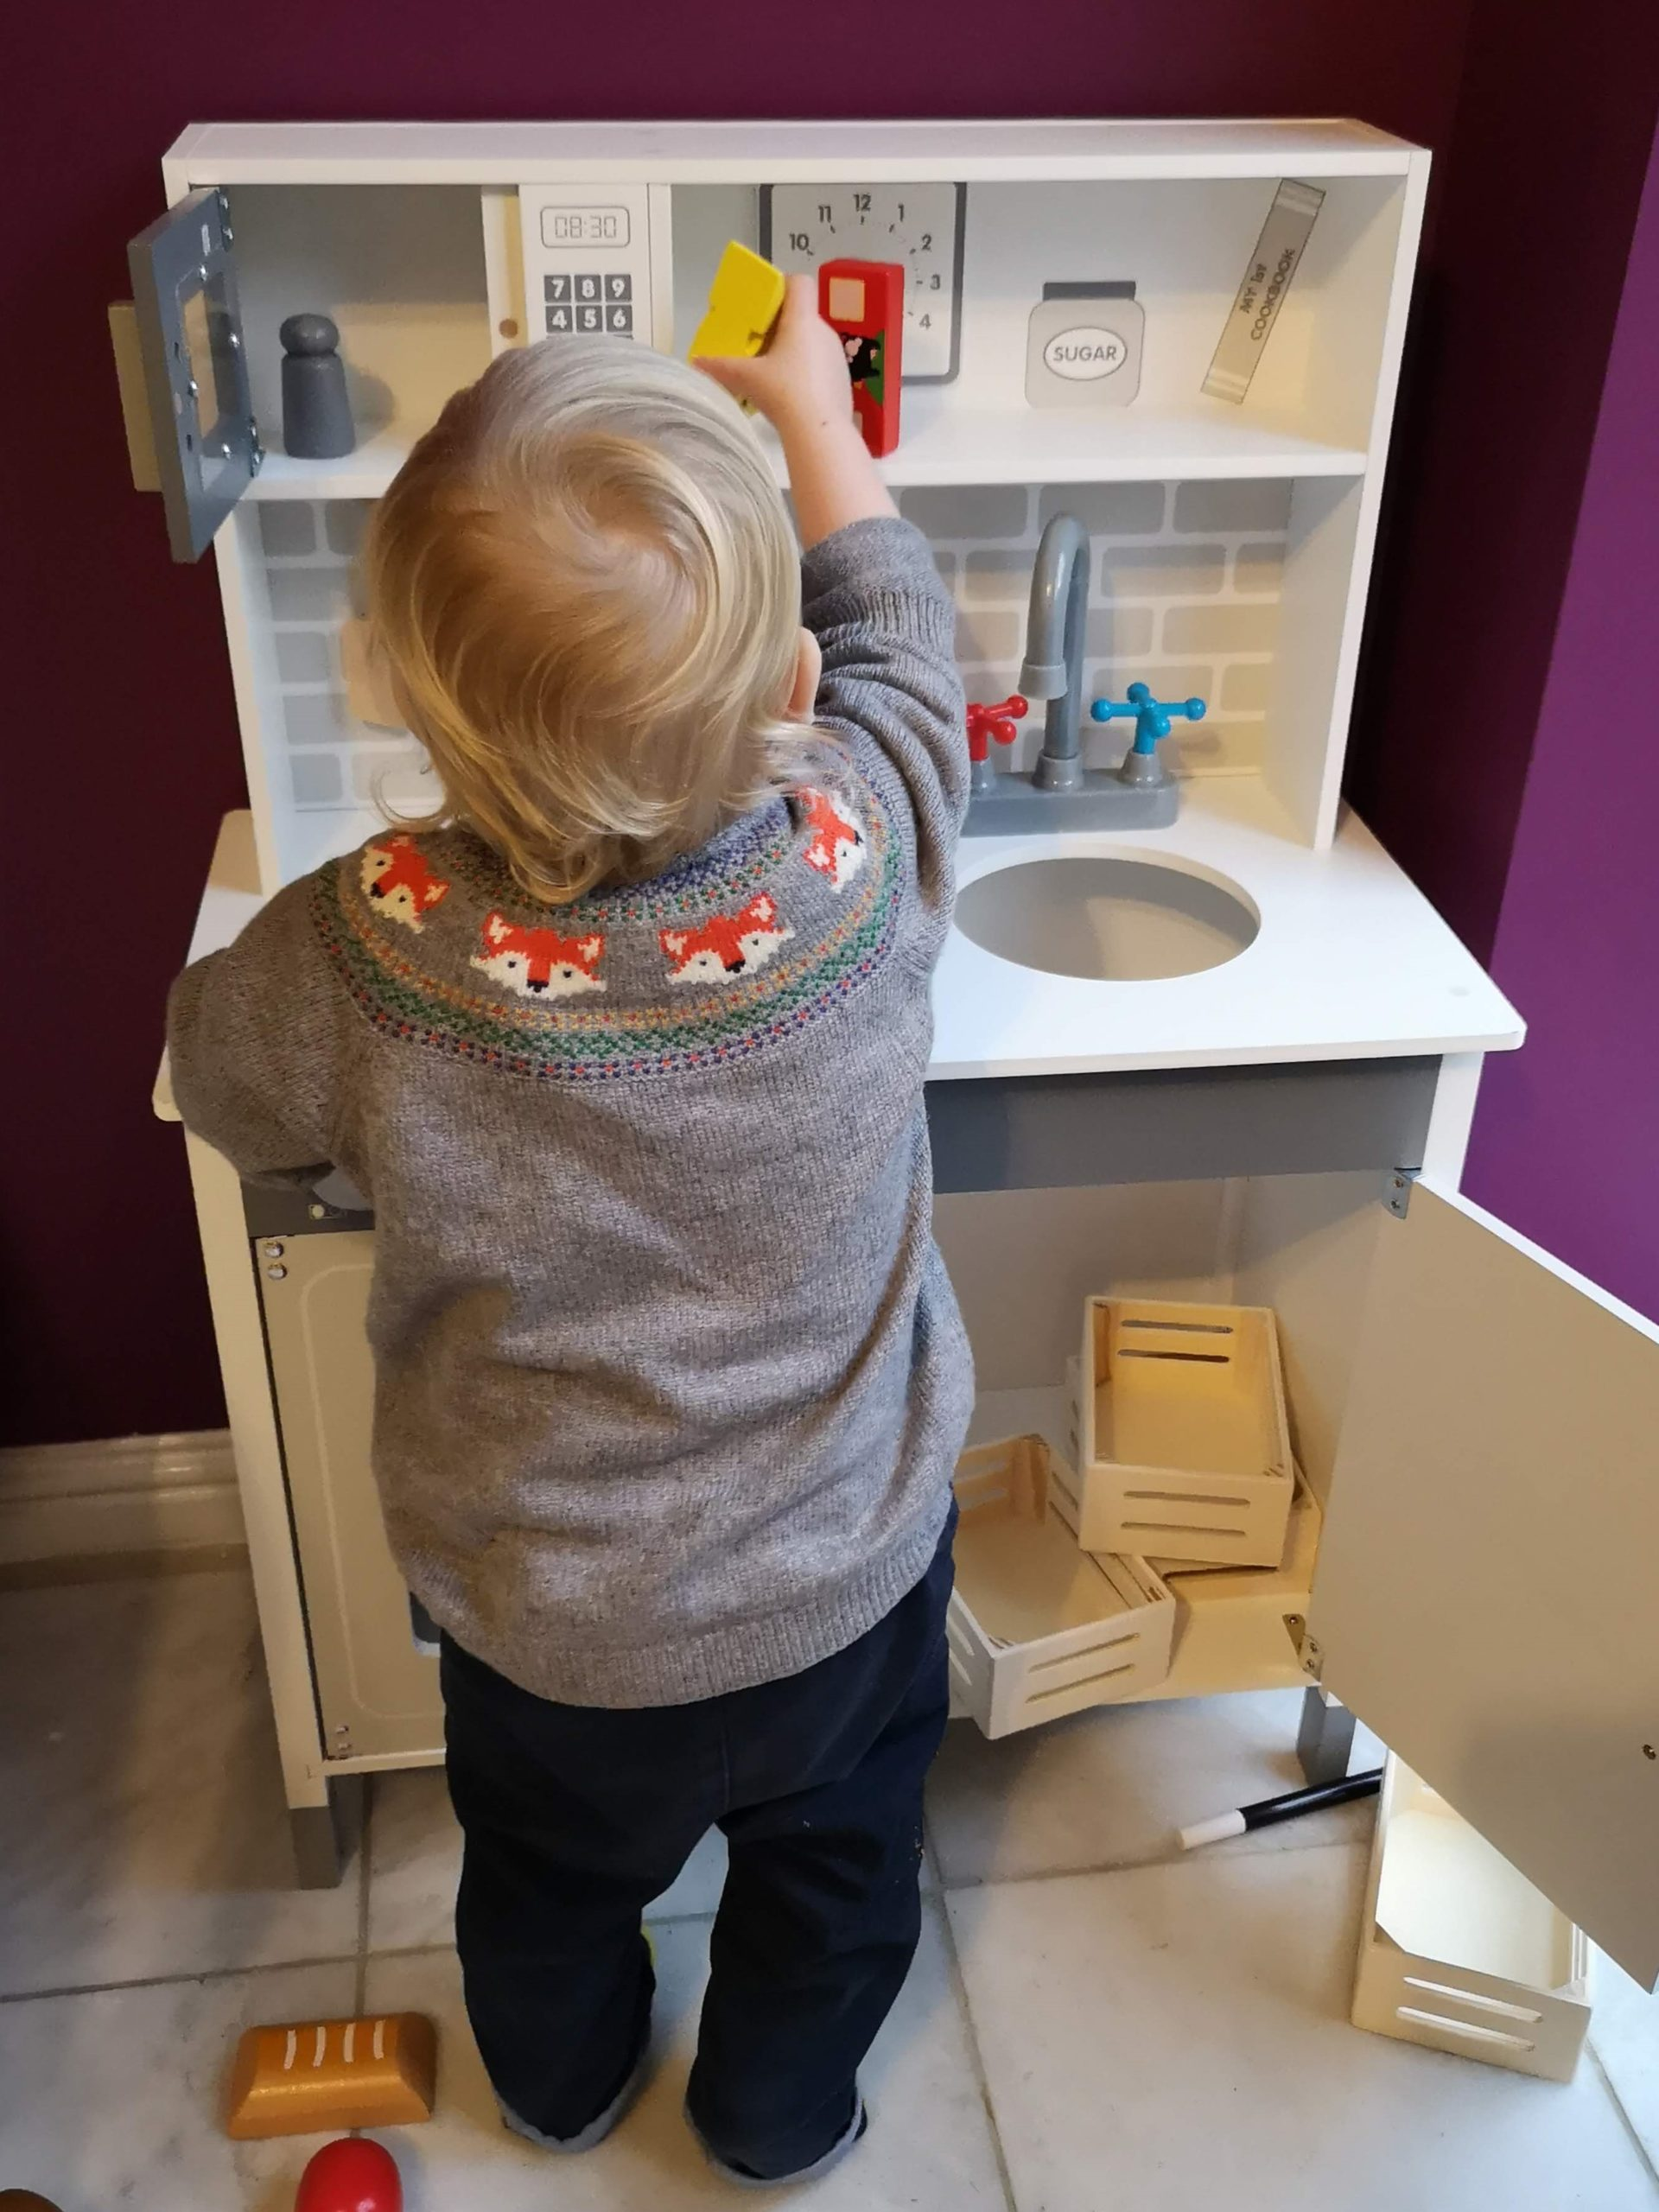 Toddler playing with toy kitchen